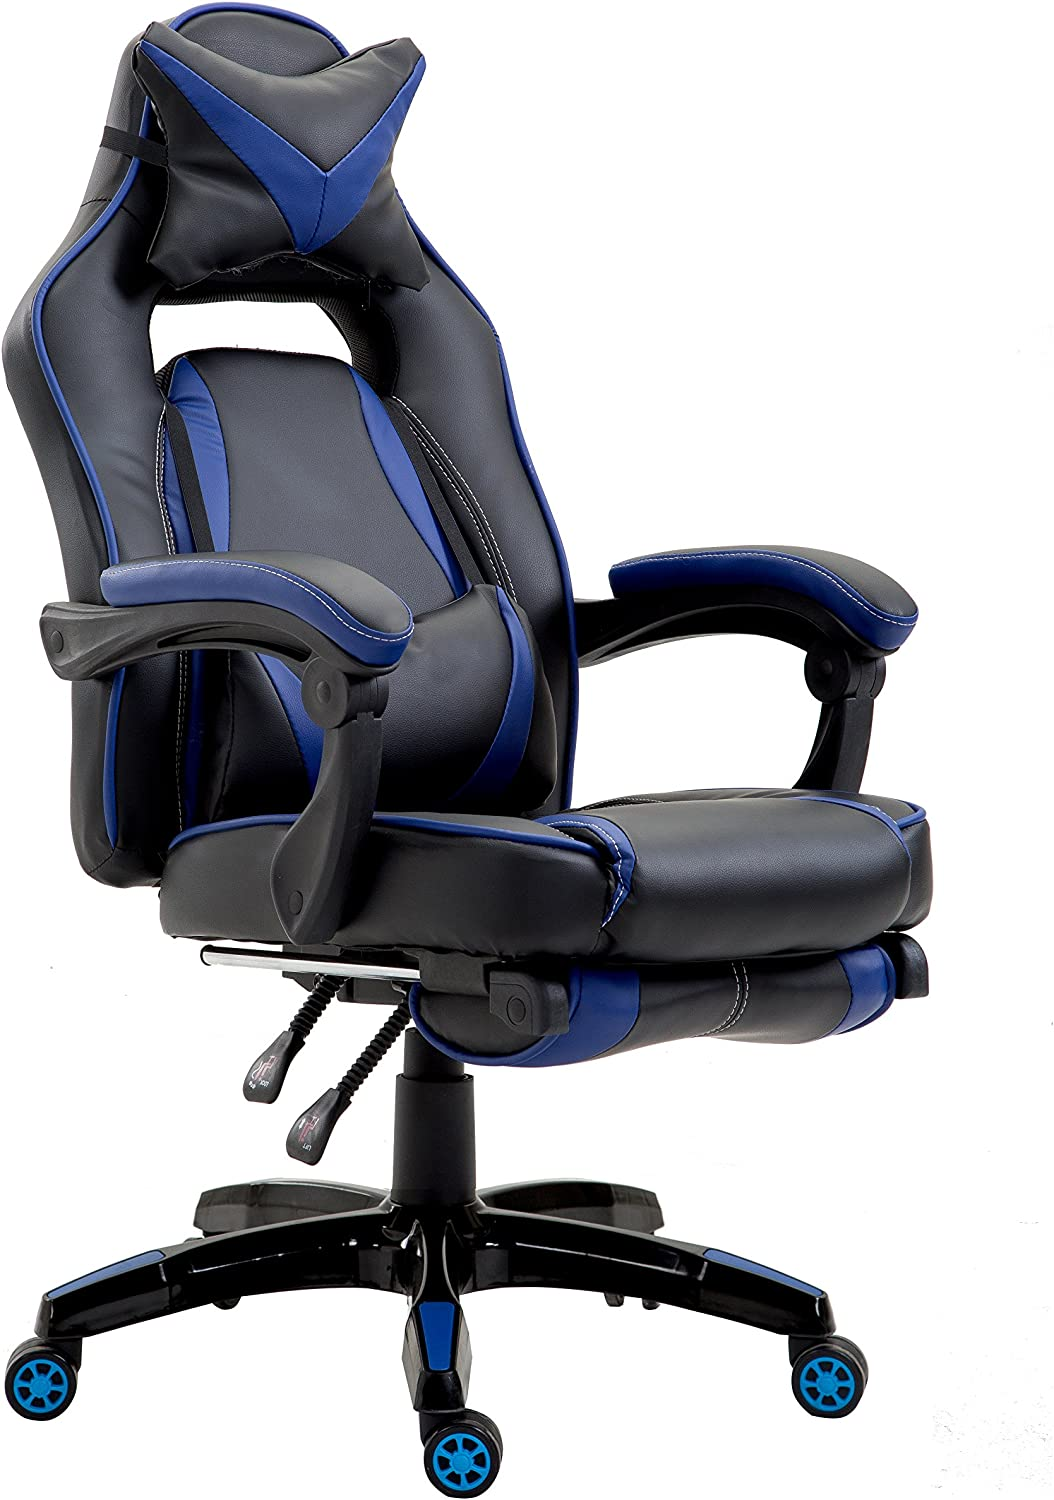 Cherry Tree Furniture Recliner Gaming Swivel Chair